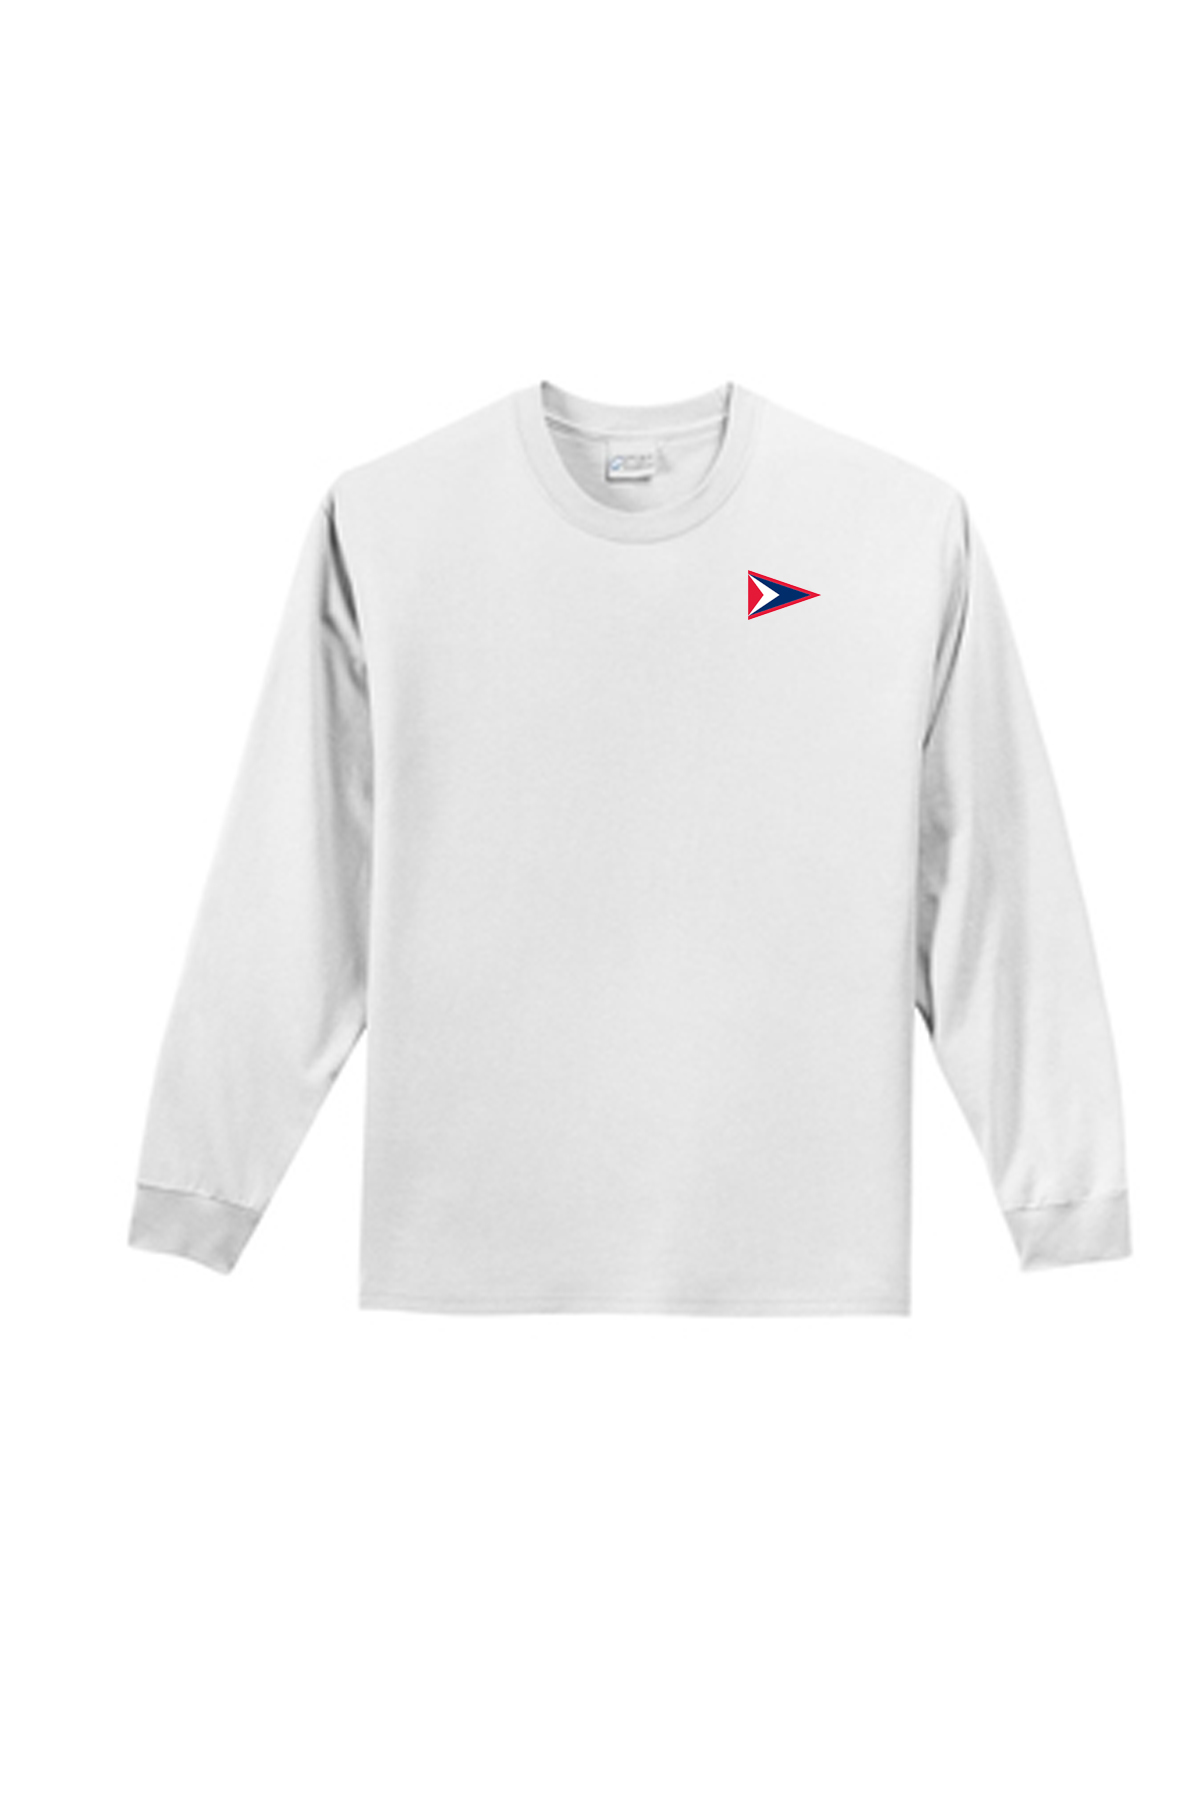 Biddeford Pool Yacht Club - Men's Long Sleeve Cotton Tee